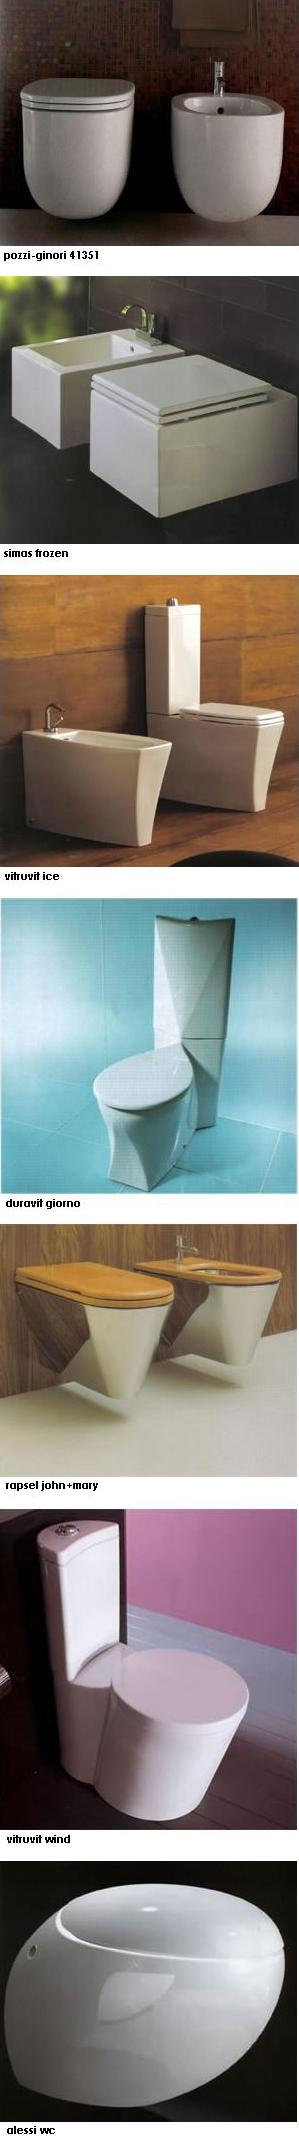 european toilet design models European Toilet Design   the latest trends